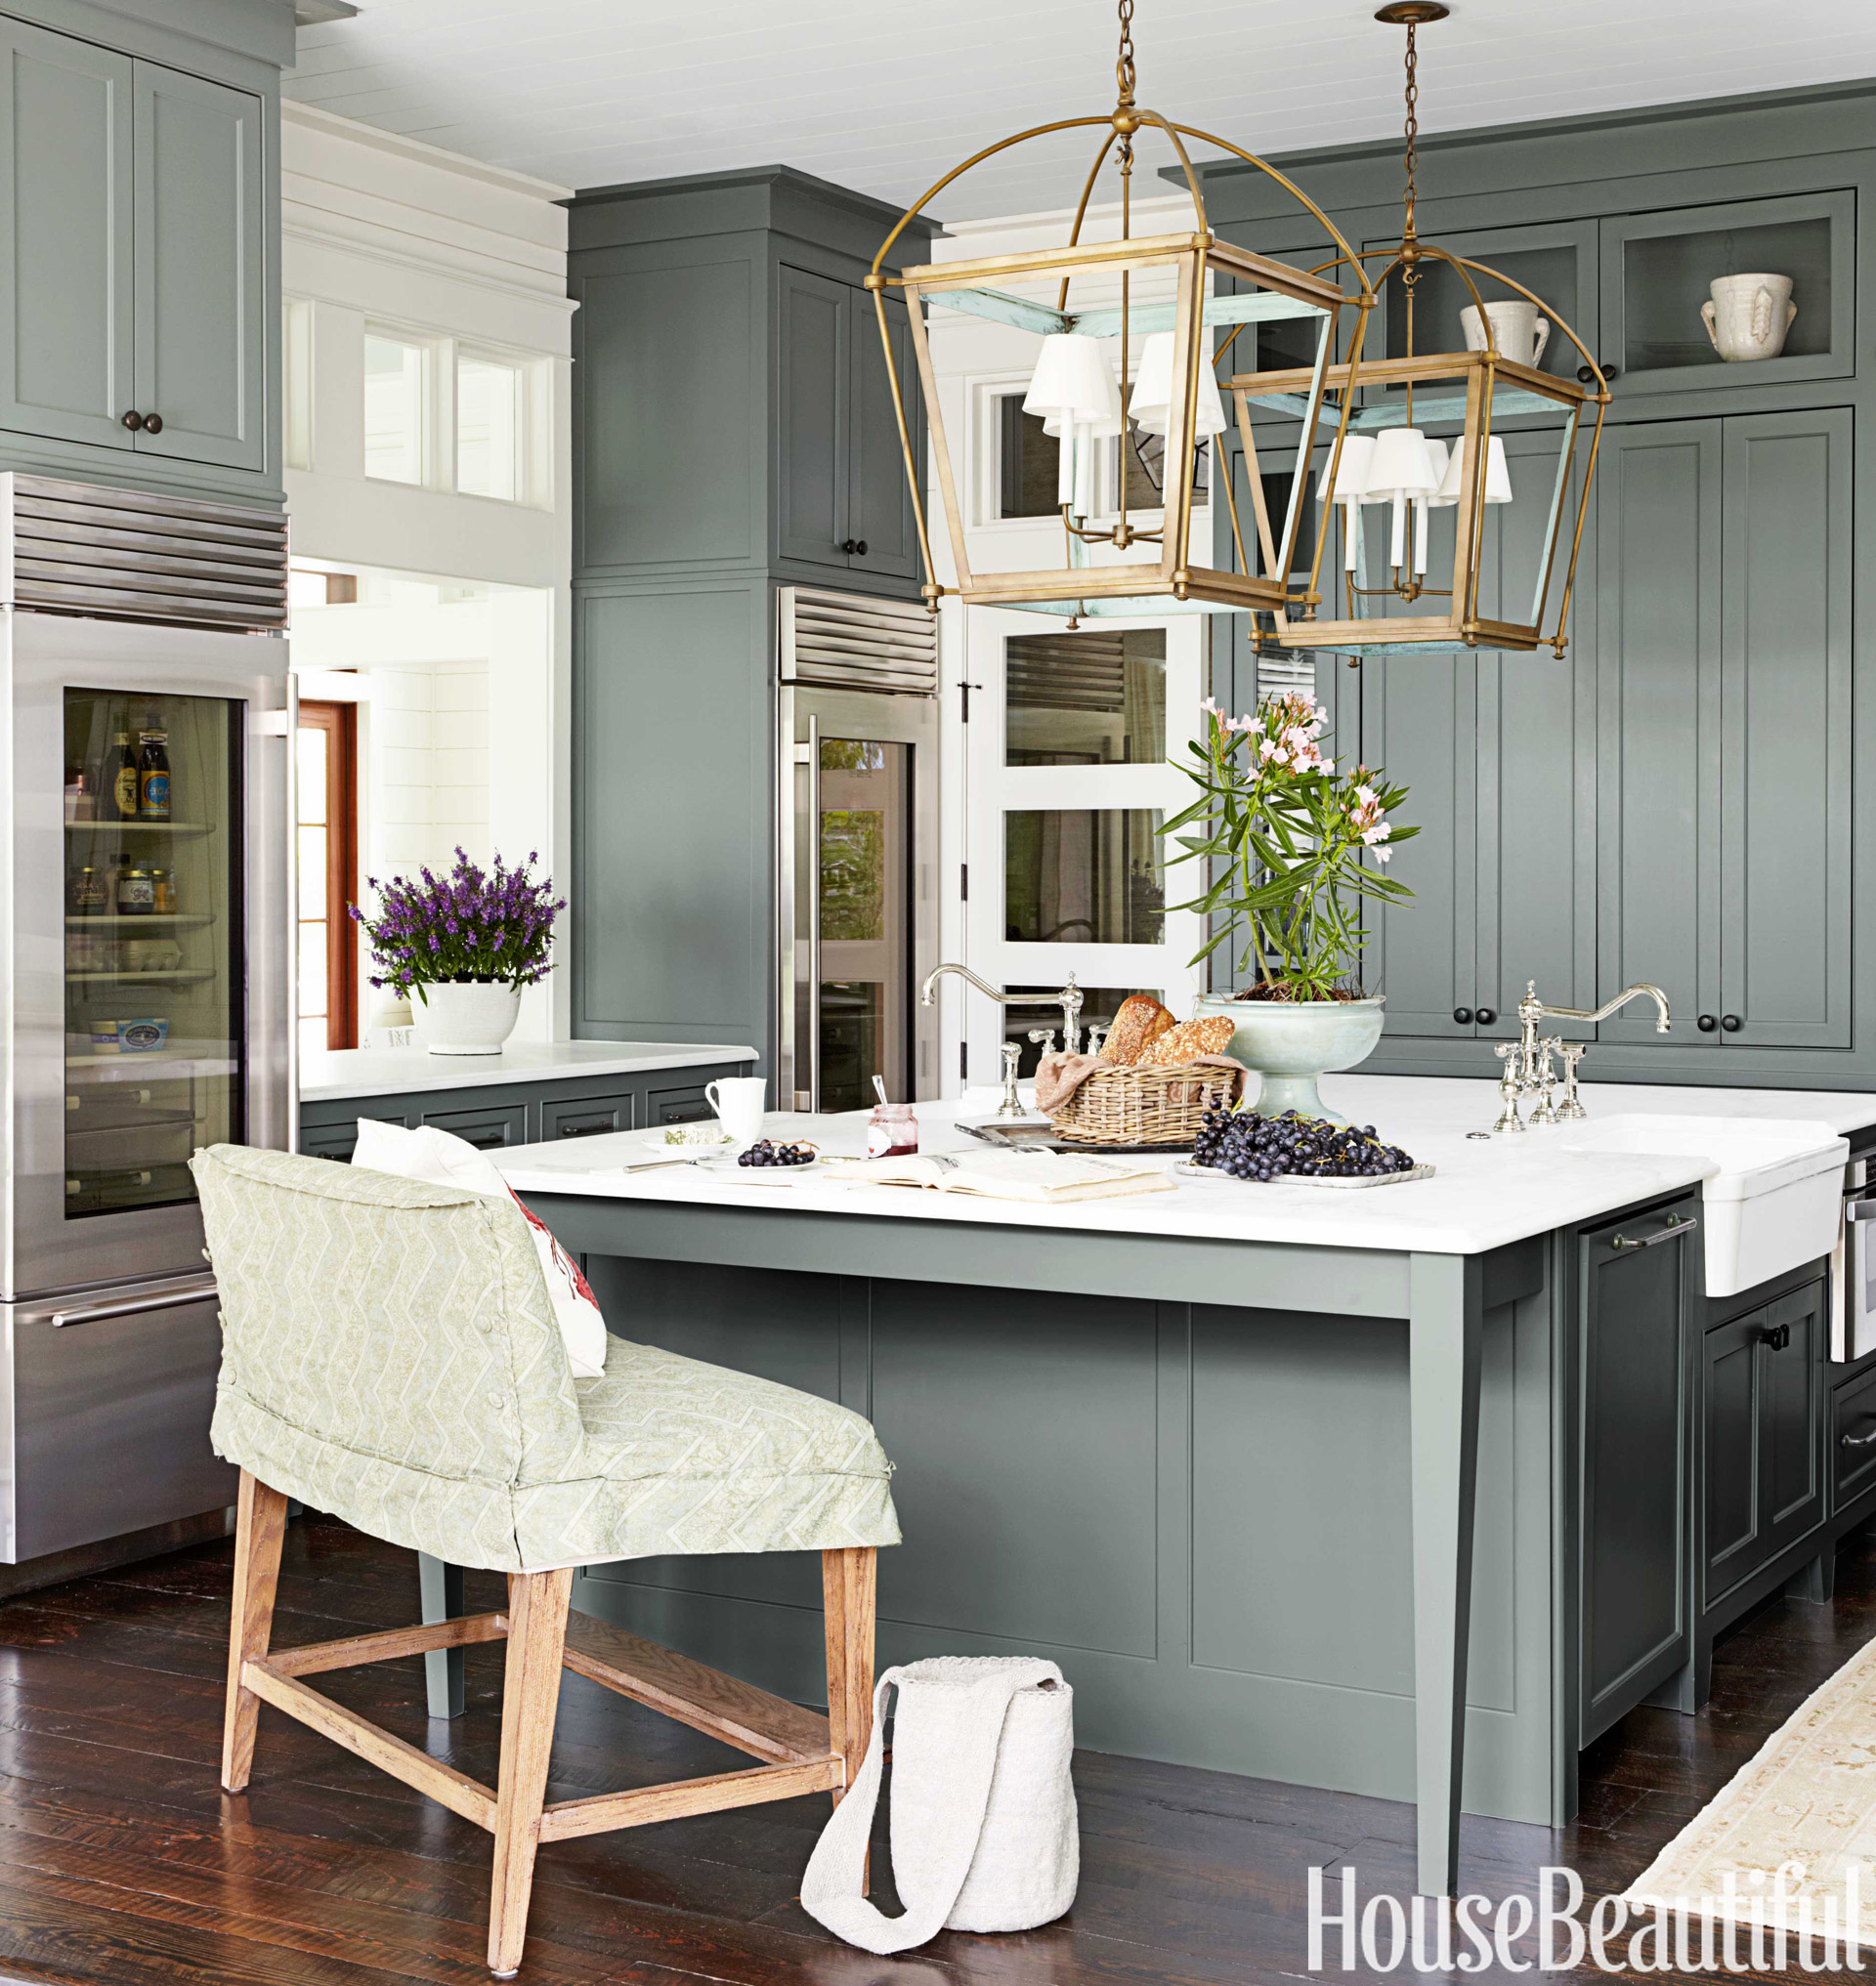 Kitchen Interior Design Photos Ideas And Inspiration From: Urban Grace Interiors Kitchen